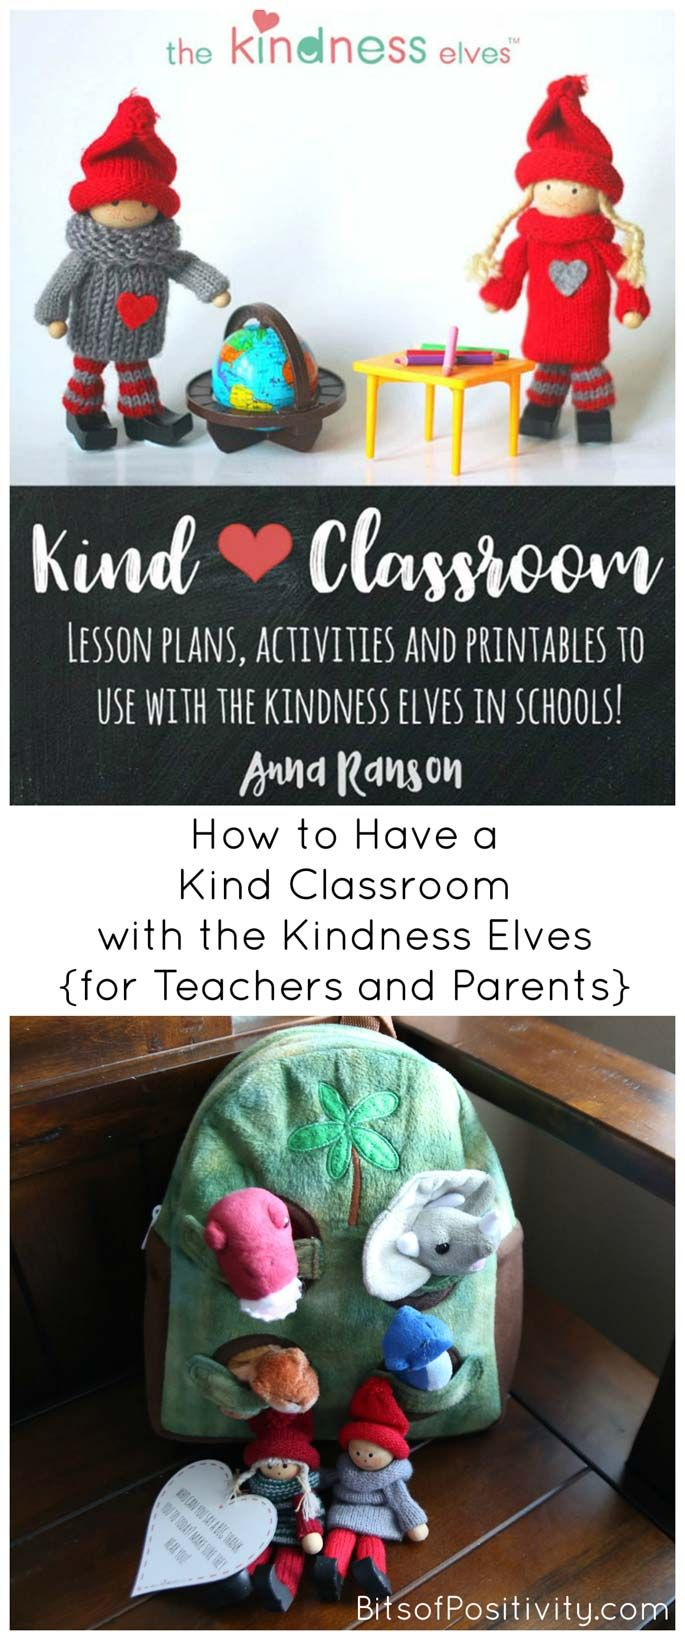 If you're a teacher or parent, check out the eBook called Kind Classroom: Lesson Plans, Activities and Printables to Use with the Kindness Elves in Schools!